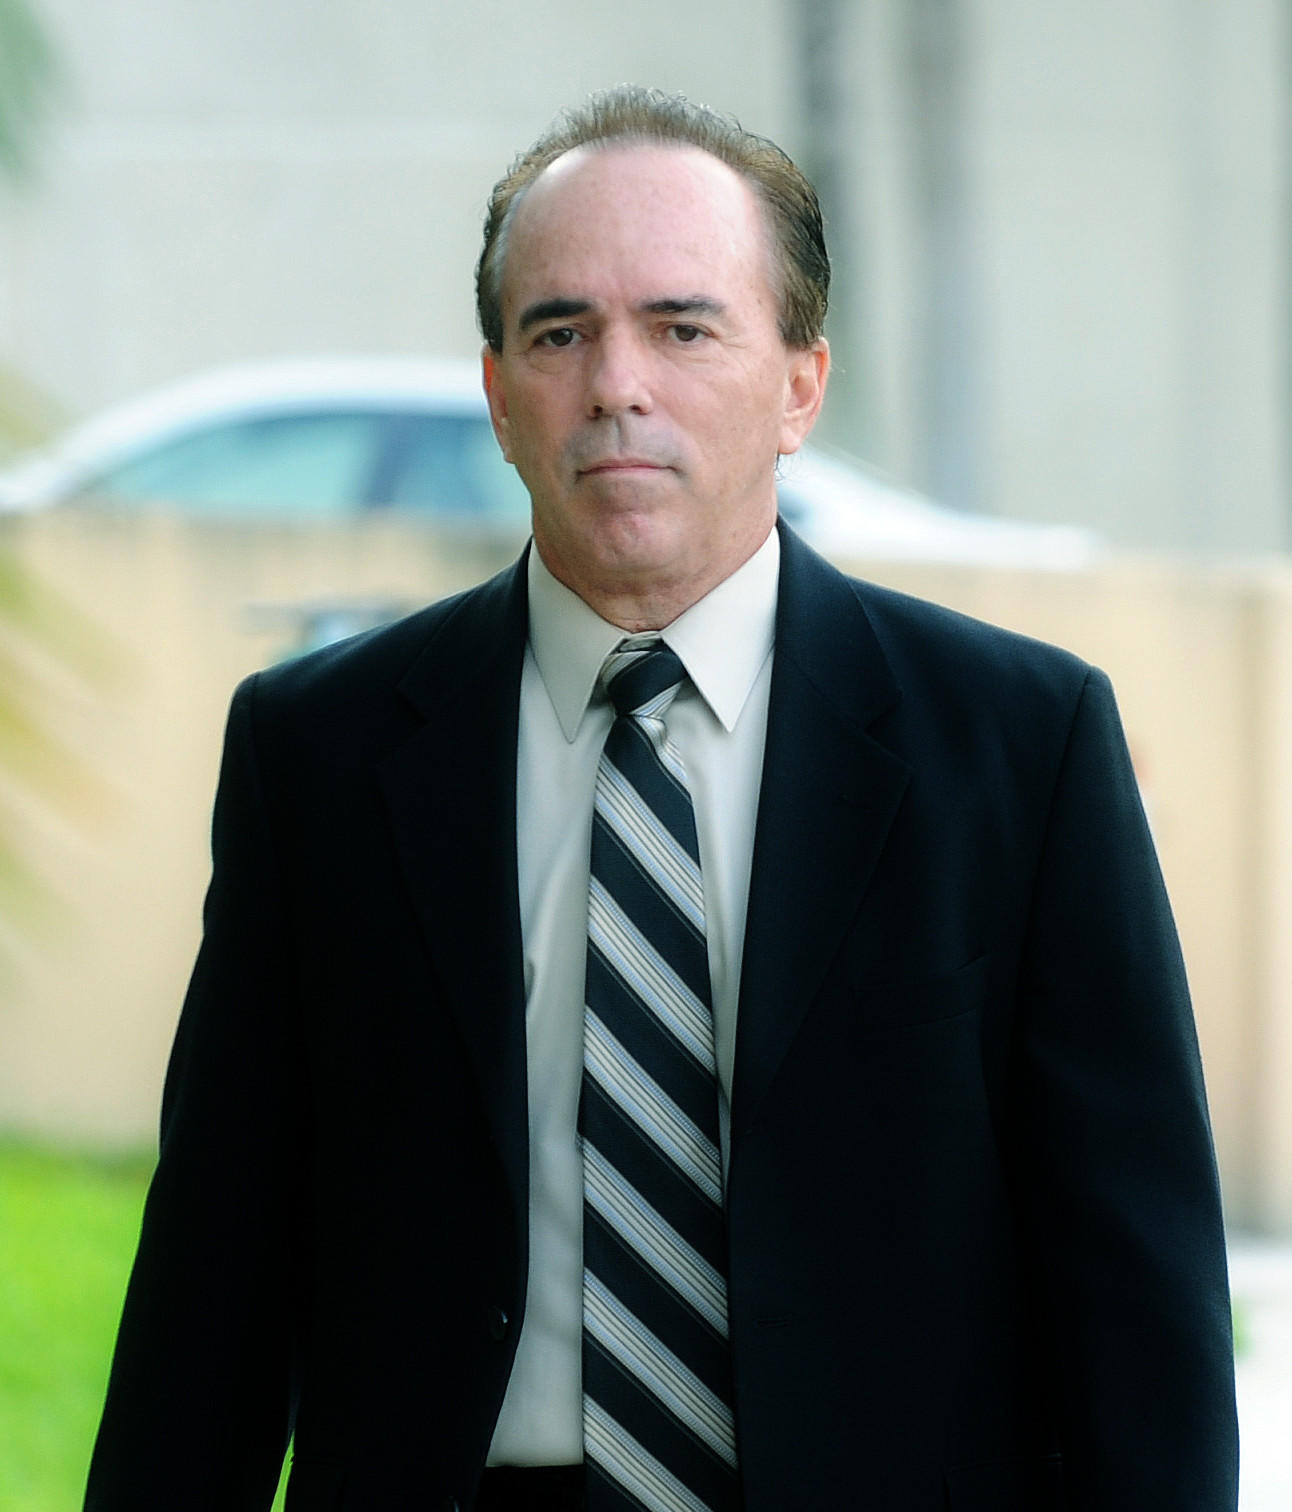 Attorney Douglas L. Bates arrives for a hearing at the federal courthouse in West Palm Beach earlier this year. Bates, who lives in Parkland and practiced law in Plantation, is charged with assisting Ponzi schemer Scott Rothstein.